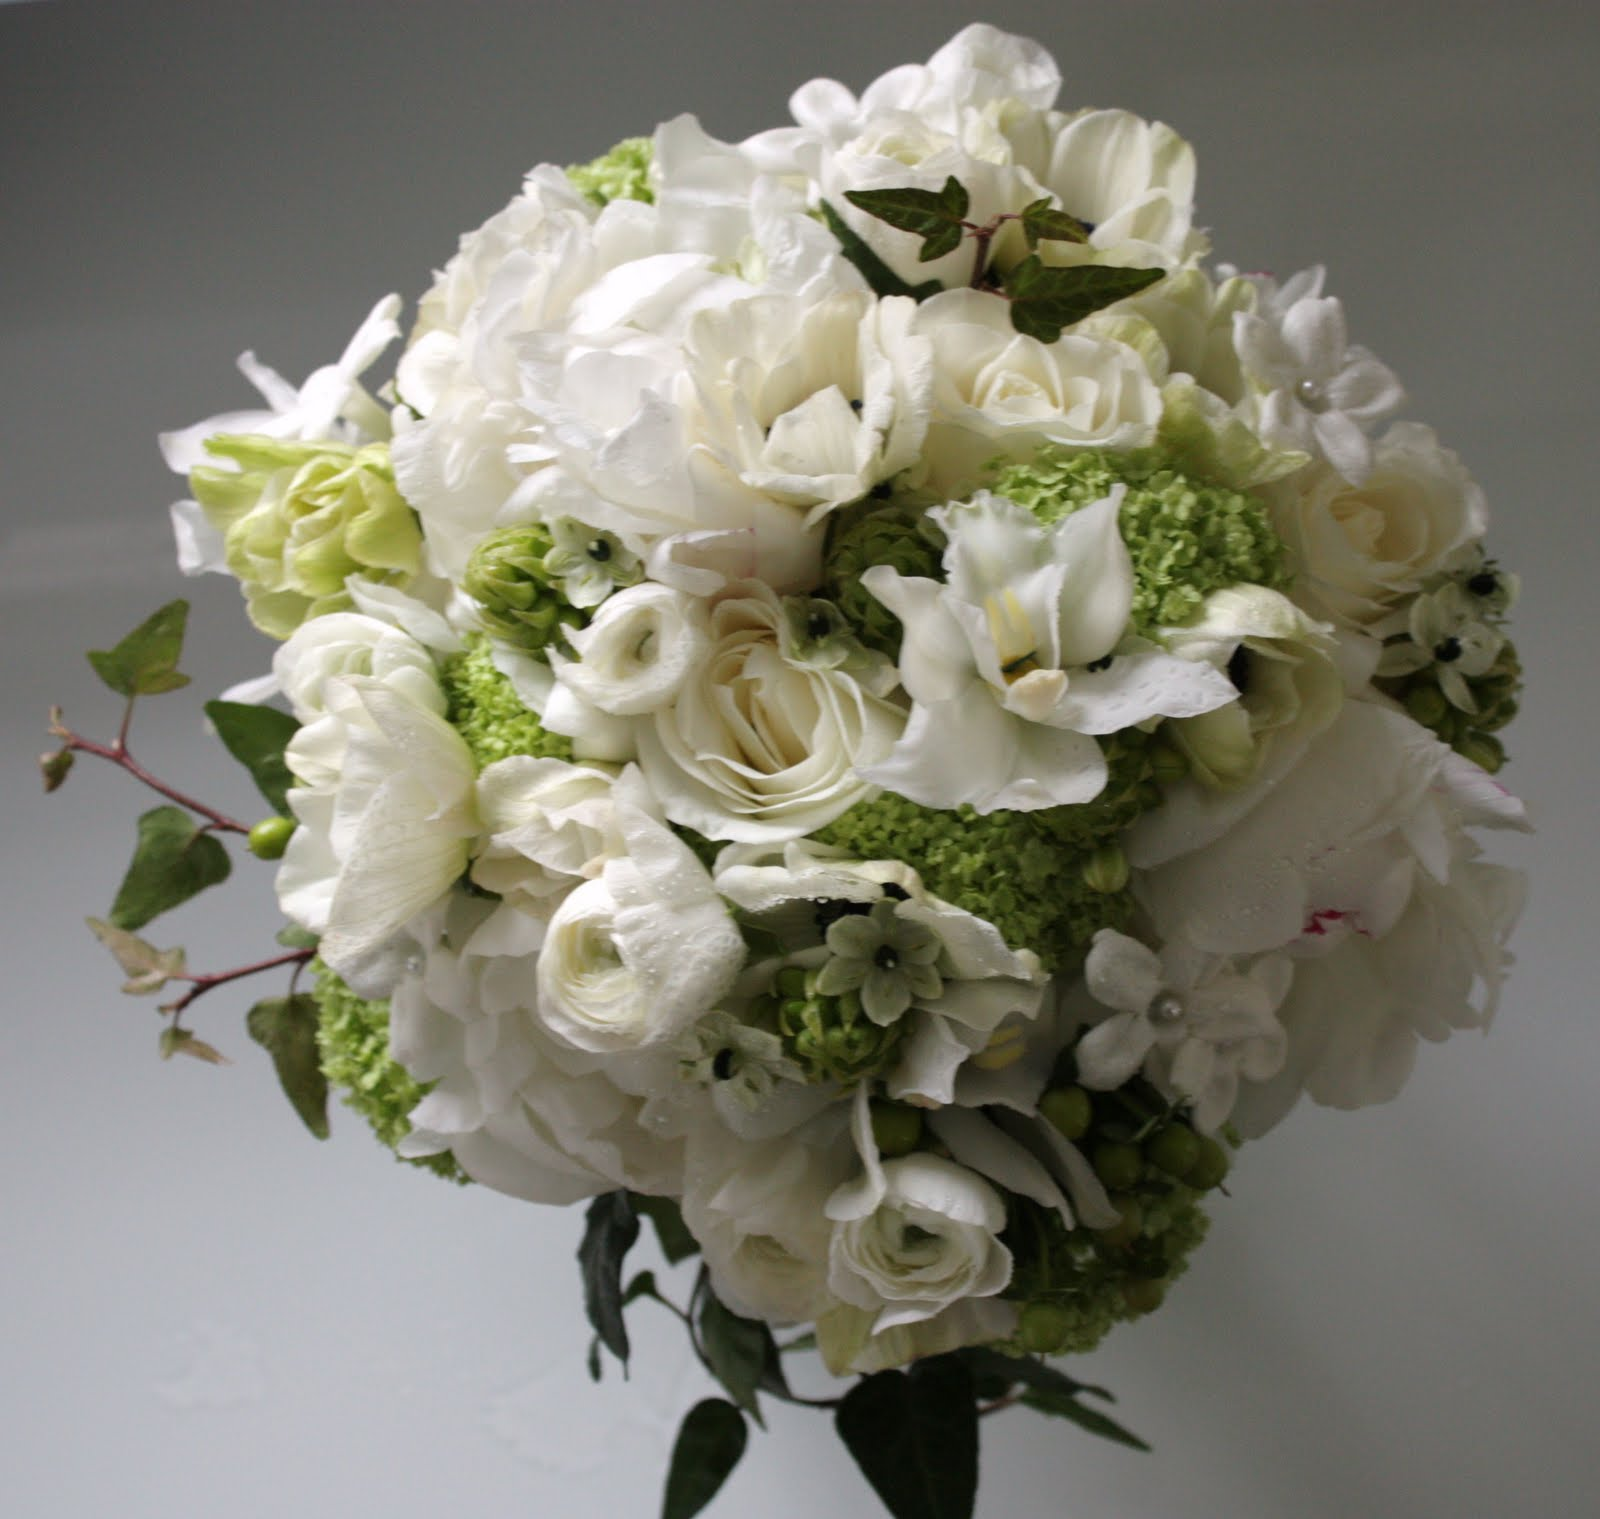 Blush floral design november 2009 as white peonies ranunculus green hydrangea white anemones green parrot tulips lisianthus curly willow branches roses and other seasonal flowers mightylinksfo Image collections